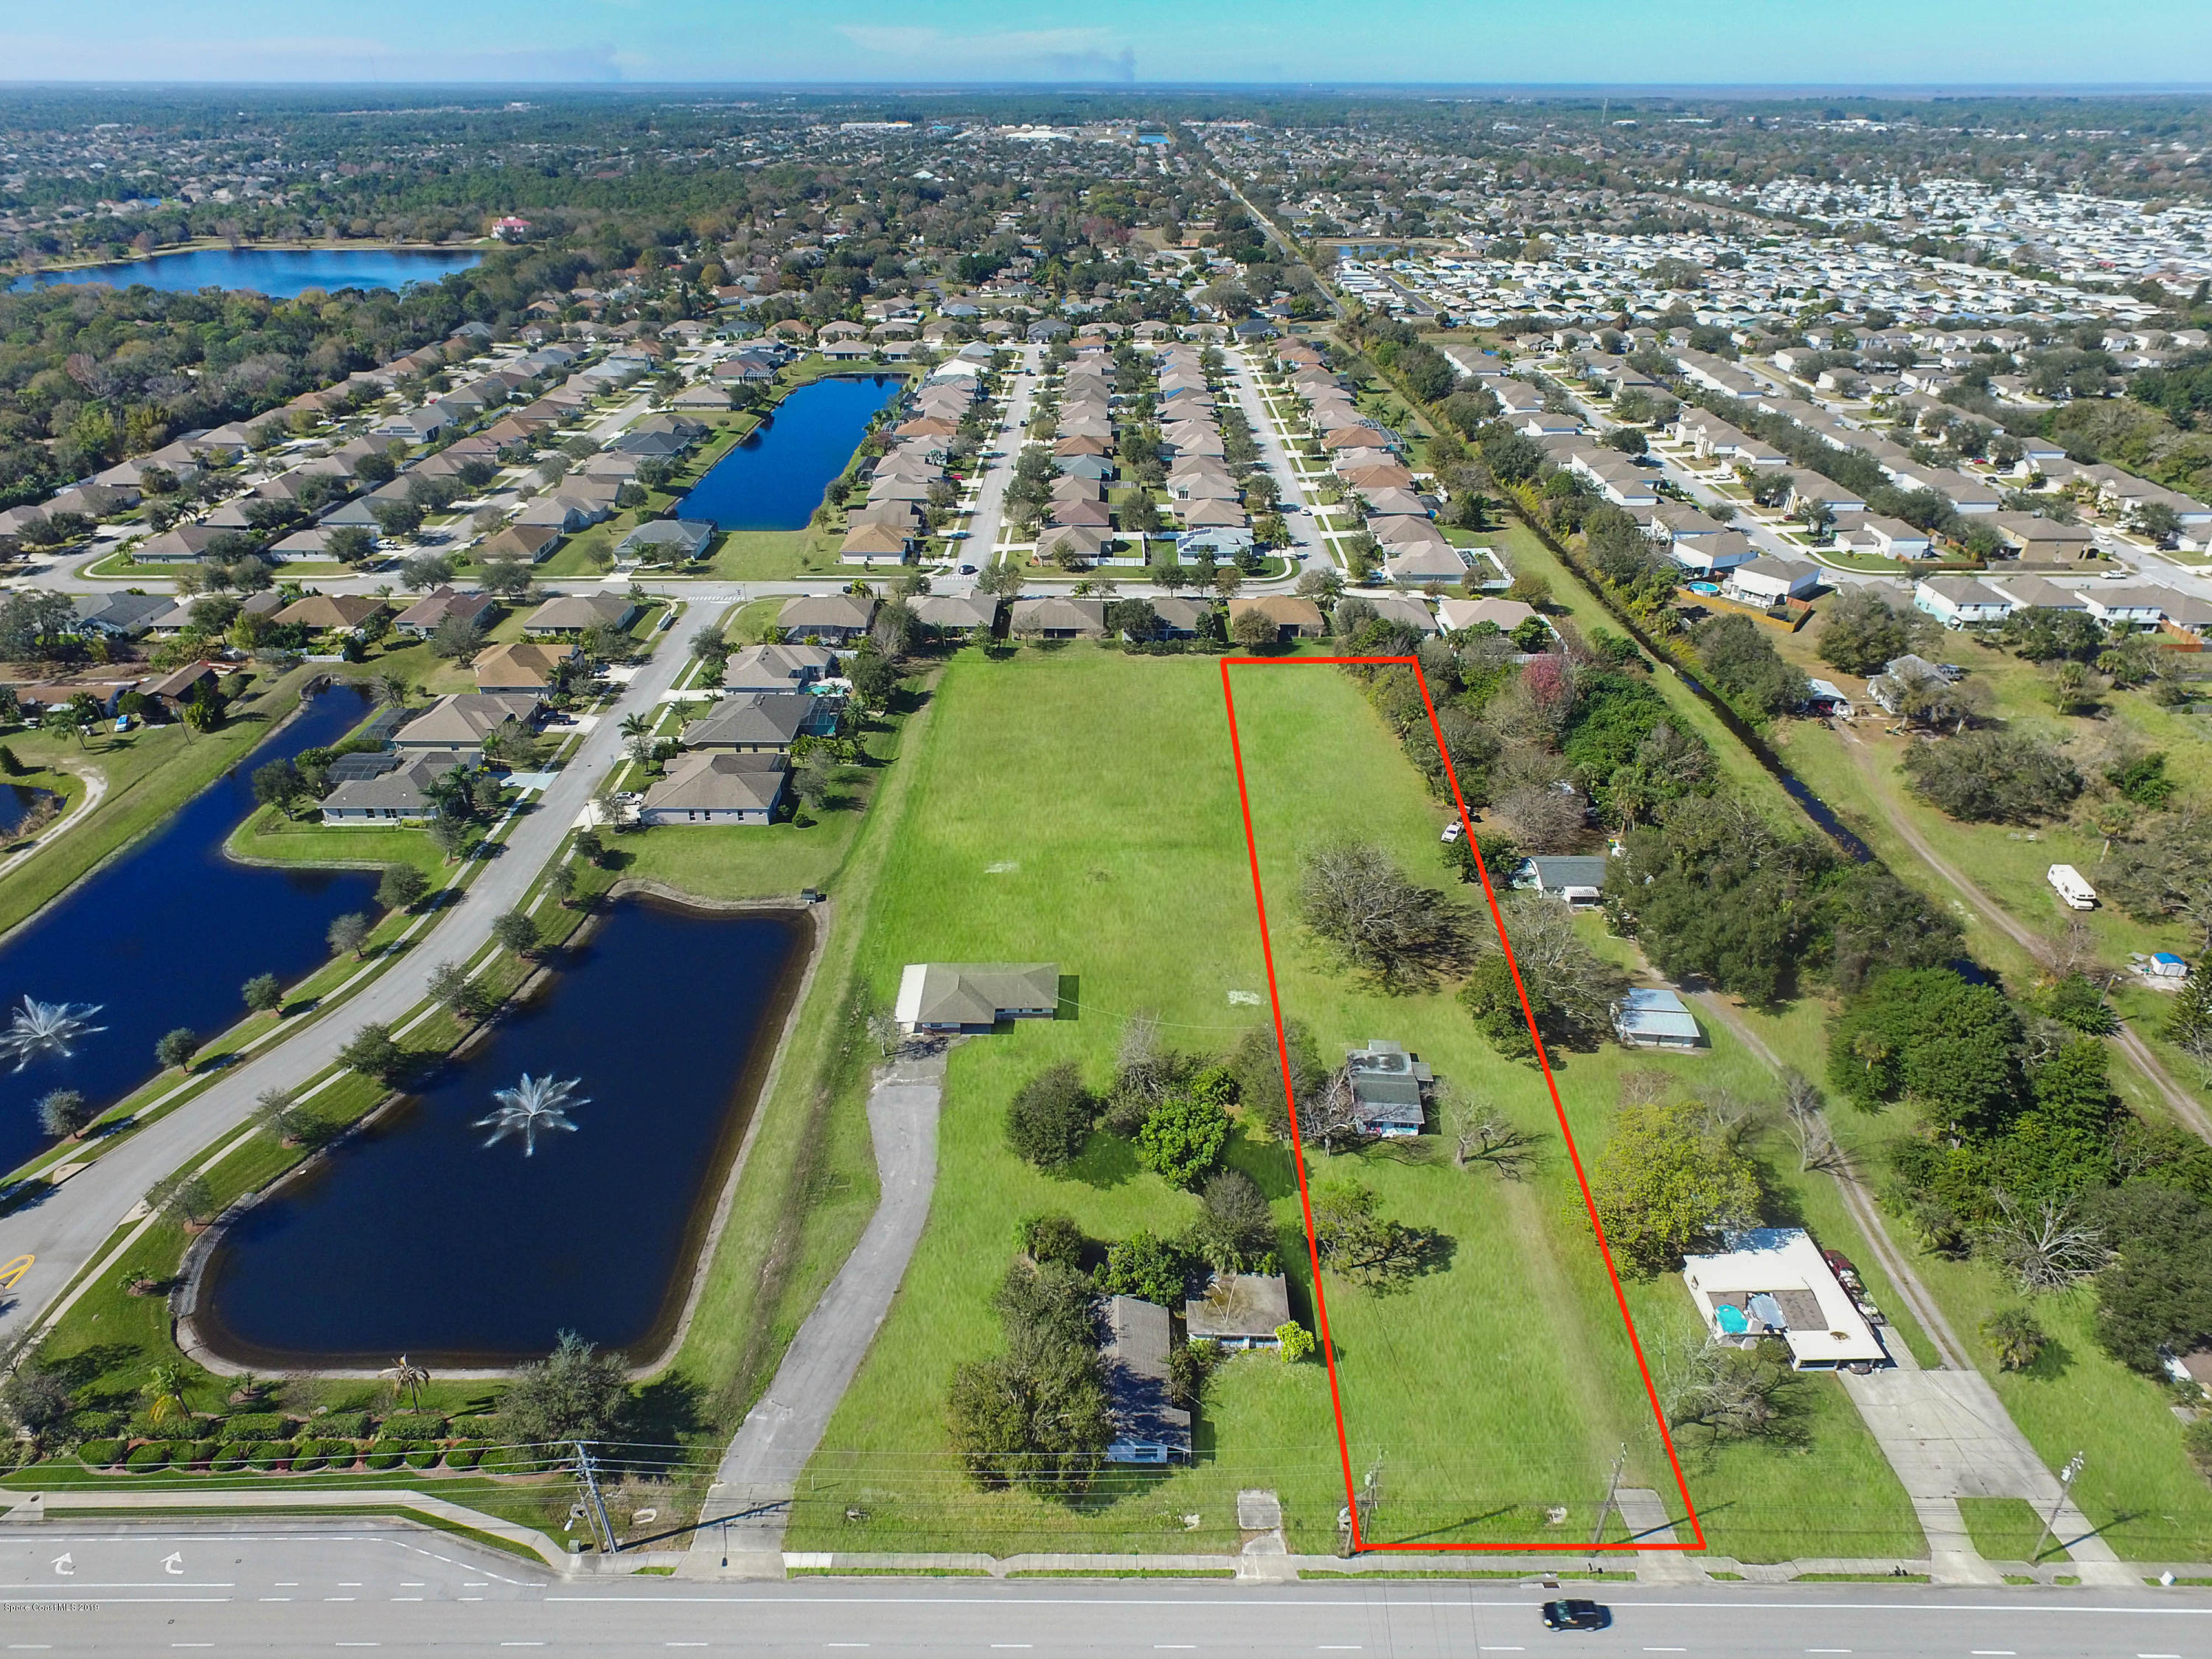 Single Family Homes for Sale at 3050-Res Dairy Melbourne, Florida 32904 United States